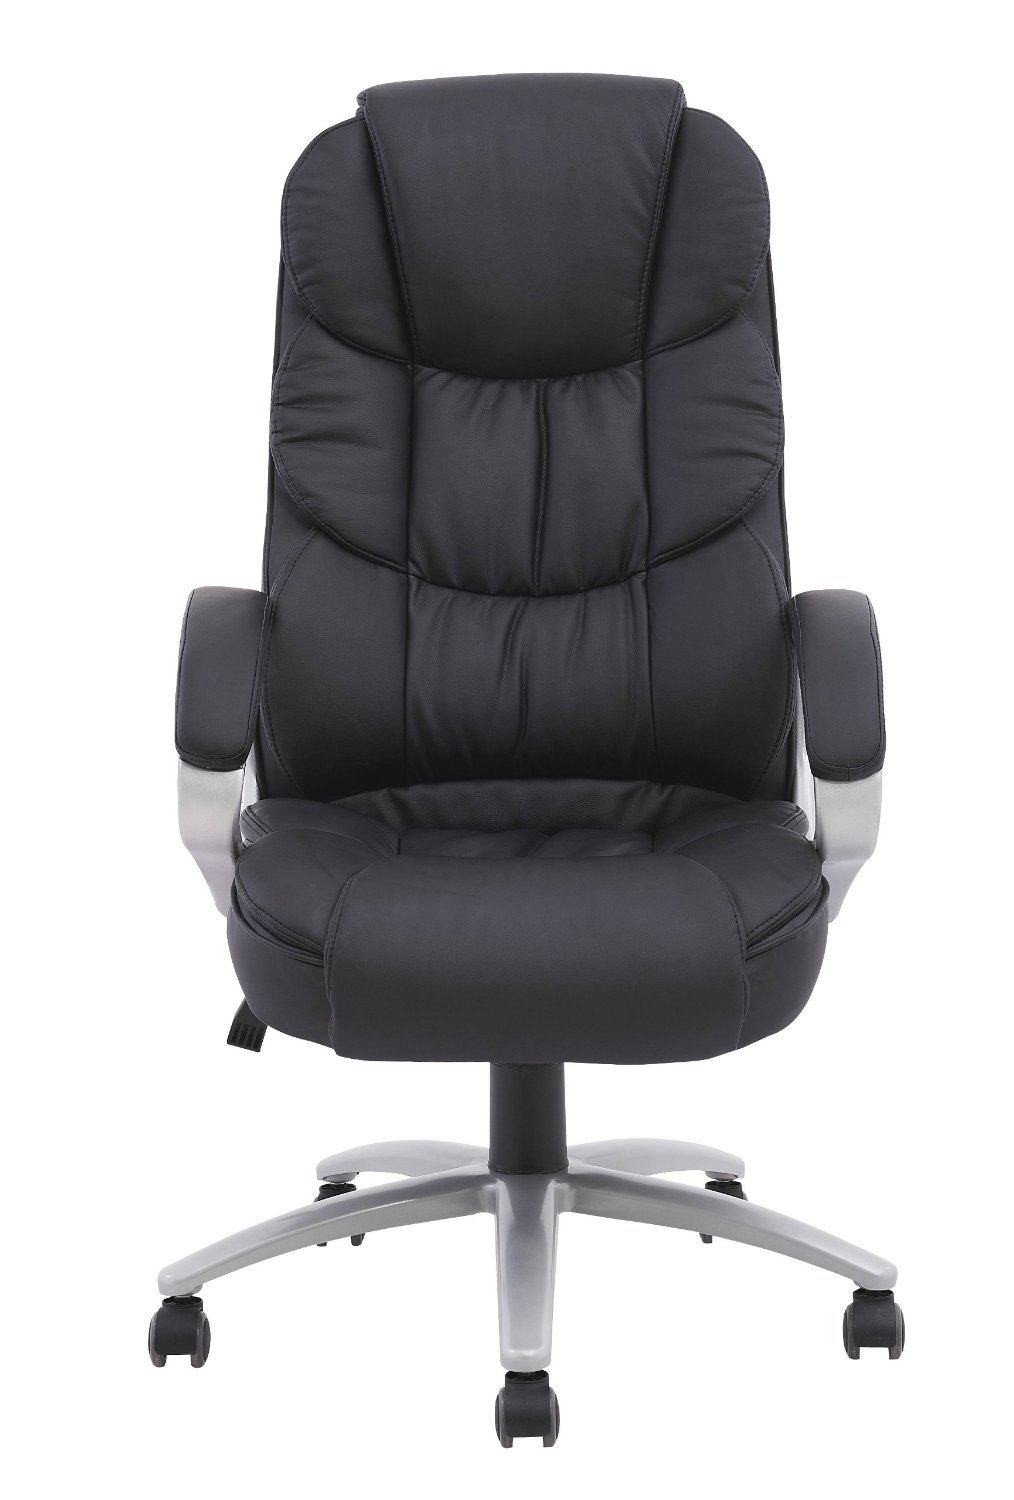 Best ideas about Best Office Chair Under 100 . Save or Pin Best fice Chair Under 200 USD November 2018 – Buyer s Now.